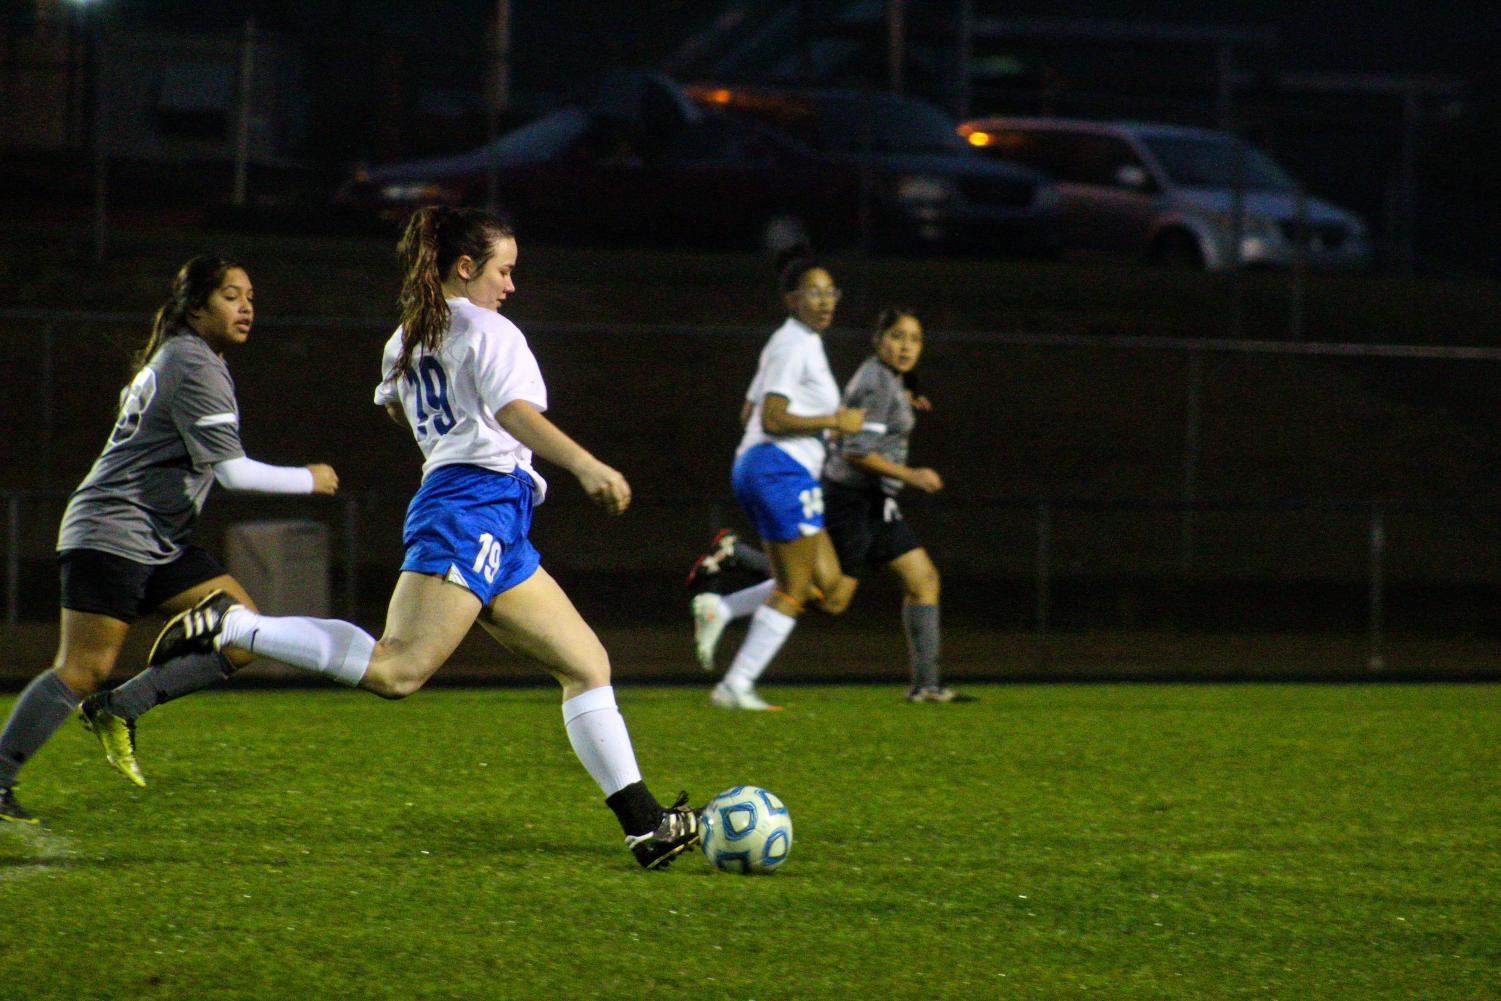 Madison Wypyski dribbles the ball away from the opposing team